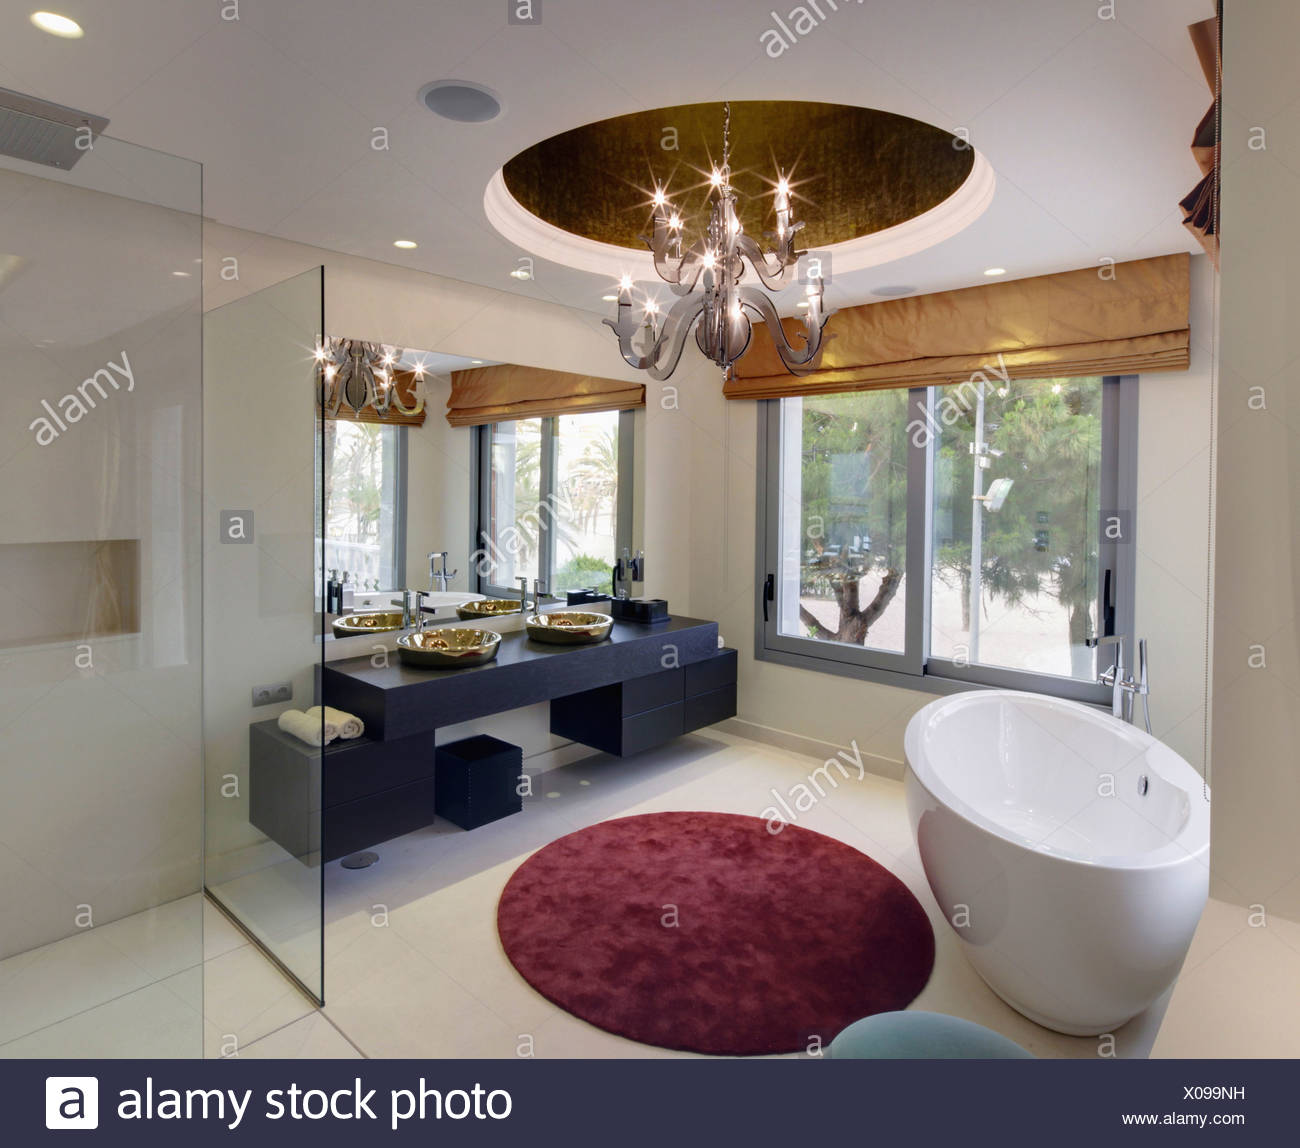 Oval Freestanding Bath And Circular Rug In Modern Bathroom With Central Light Fitting Large Windows